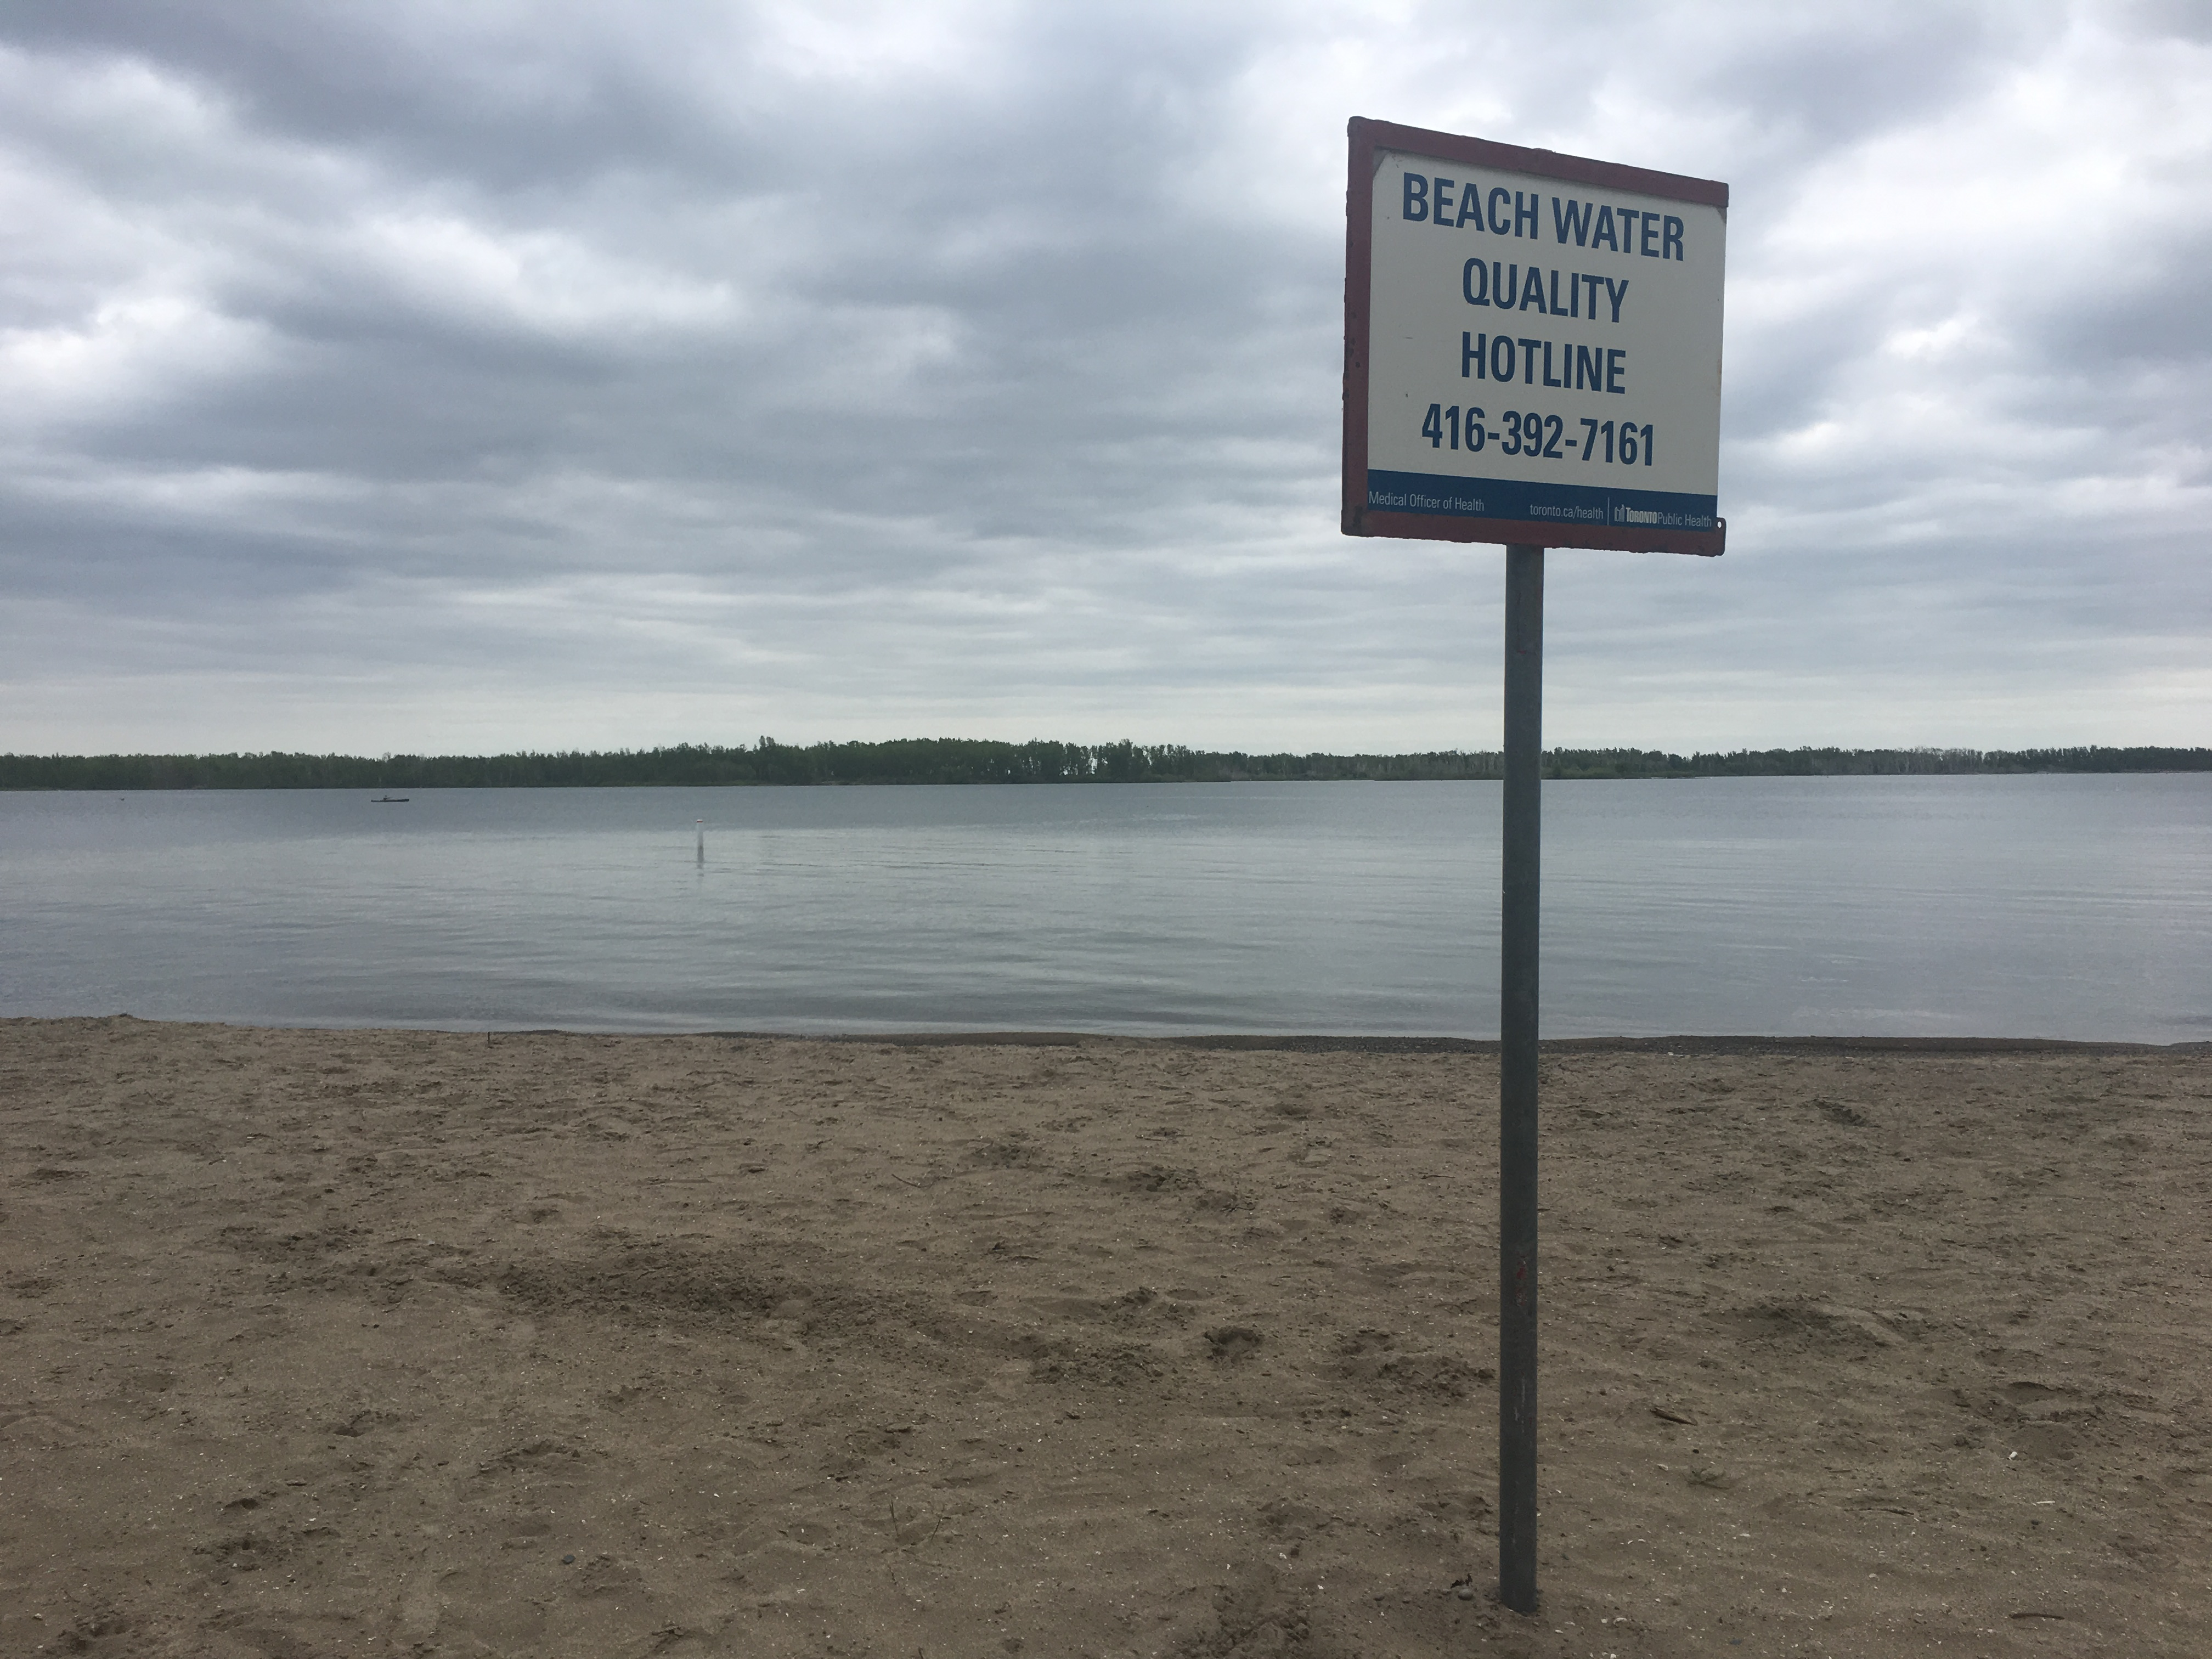 2:42 June 5, 2018. A sign advertises the Beach Water Quality Hotline at Cherry Beach.